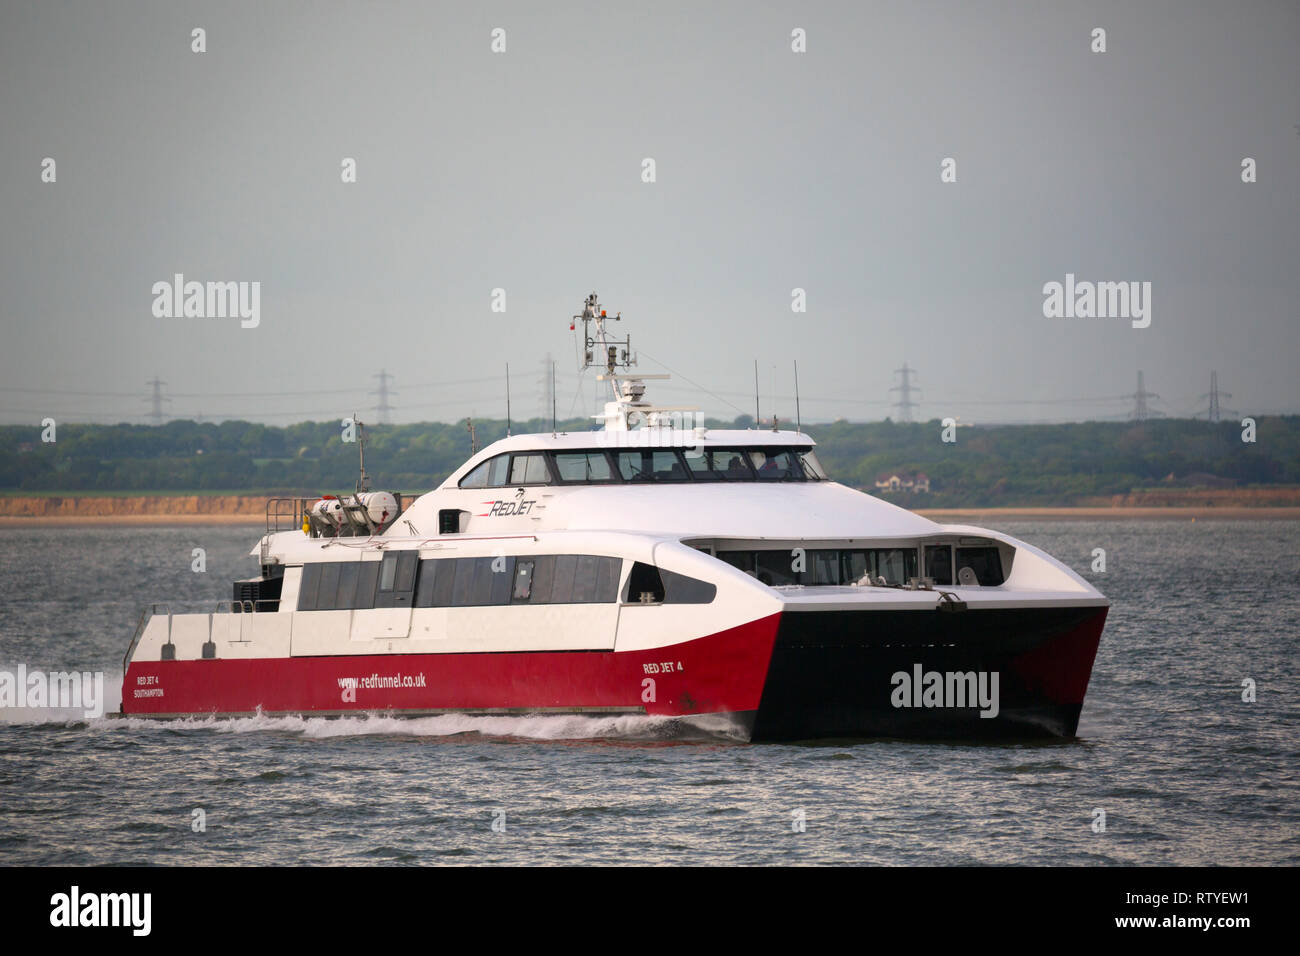 Red Jet, Funnel, fast, passenger, ferry, Cowes, isle of Wight, England, UK, - Stock Image